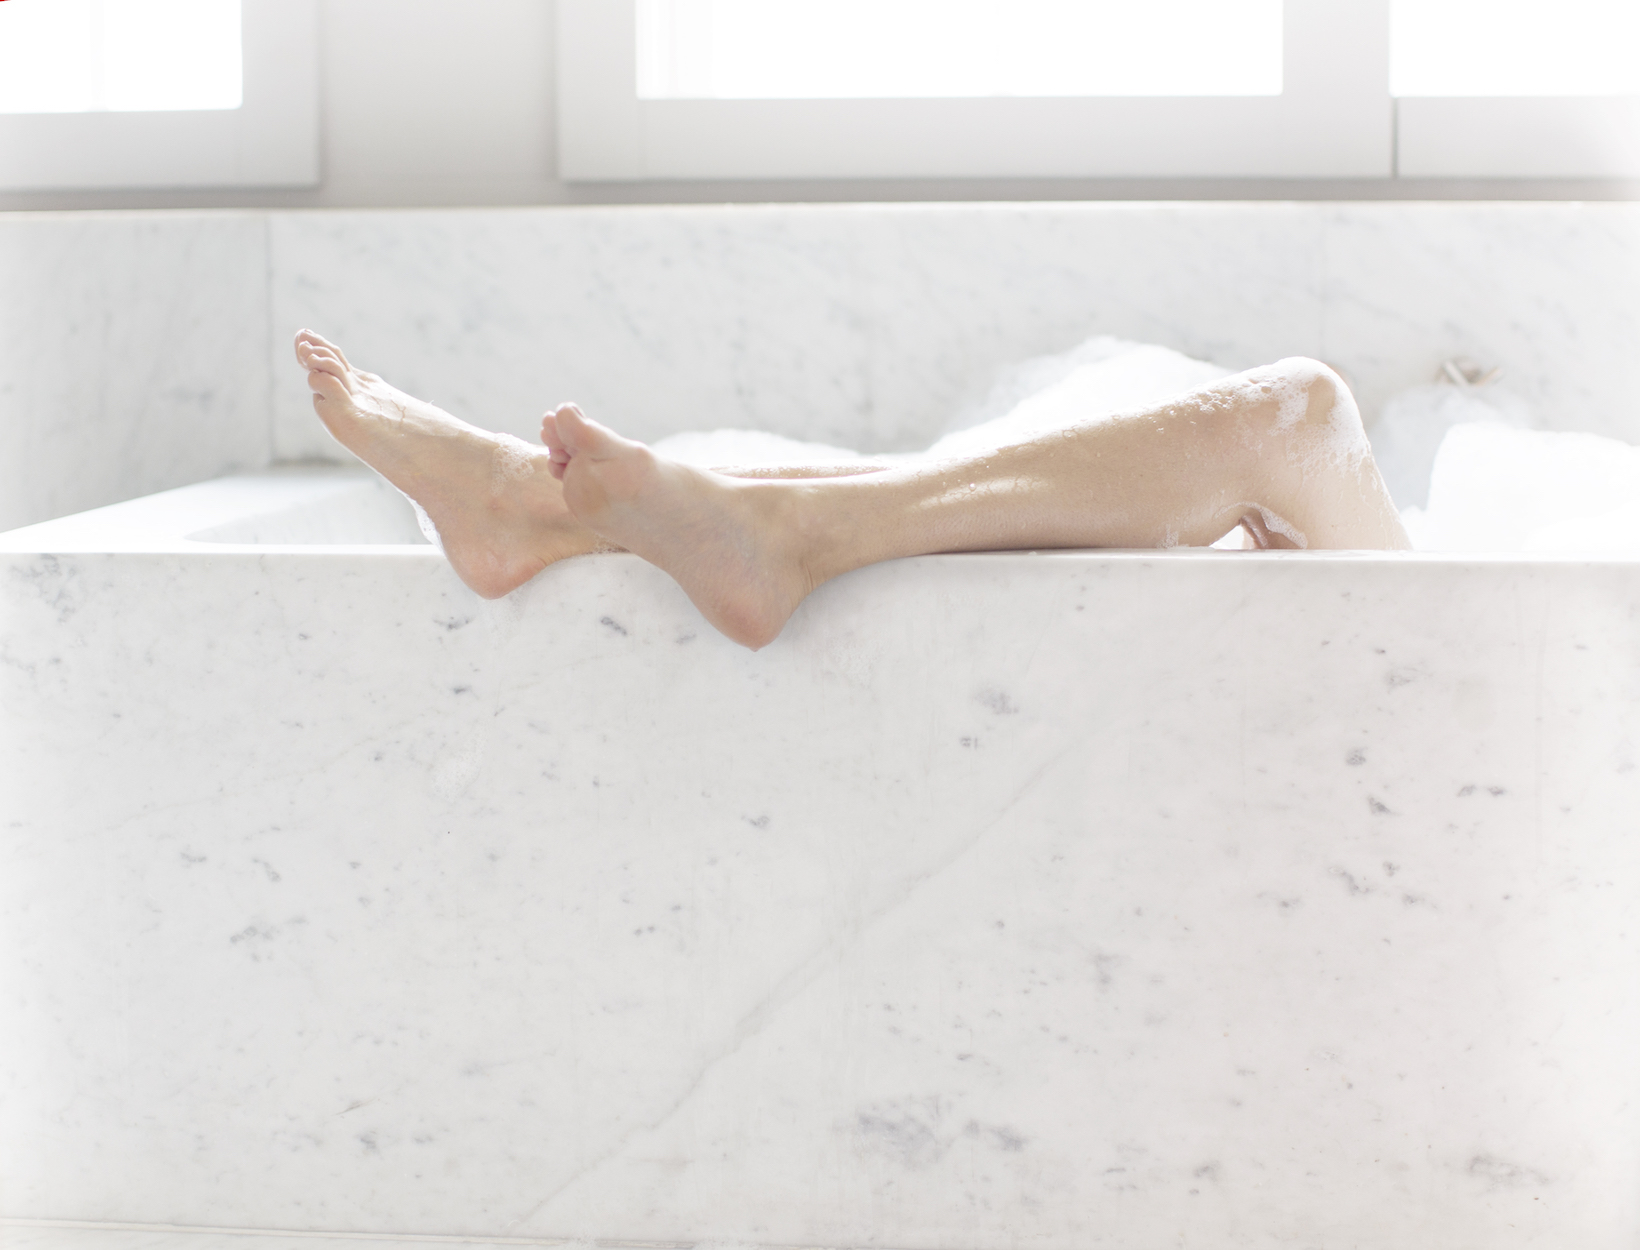 The Ultimate Bath Detox Goop